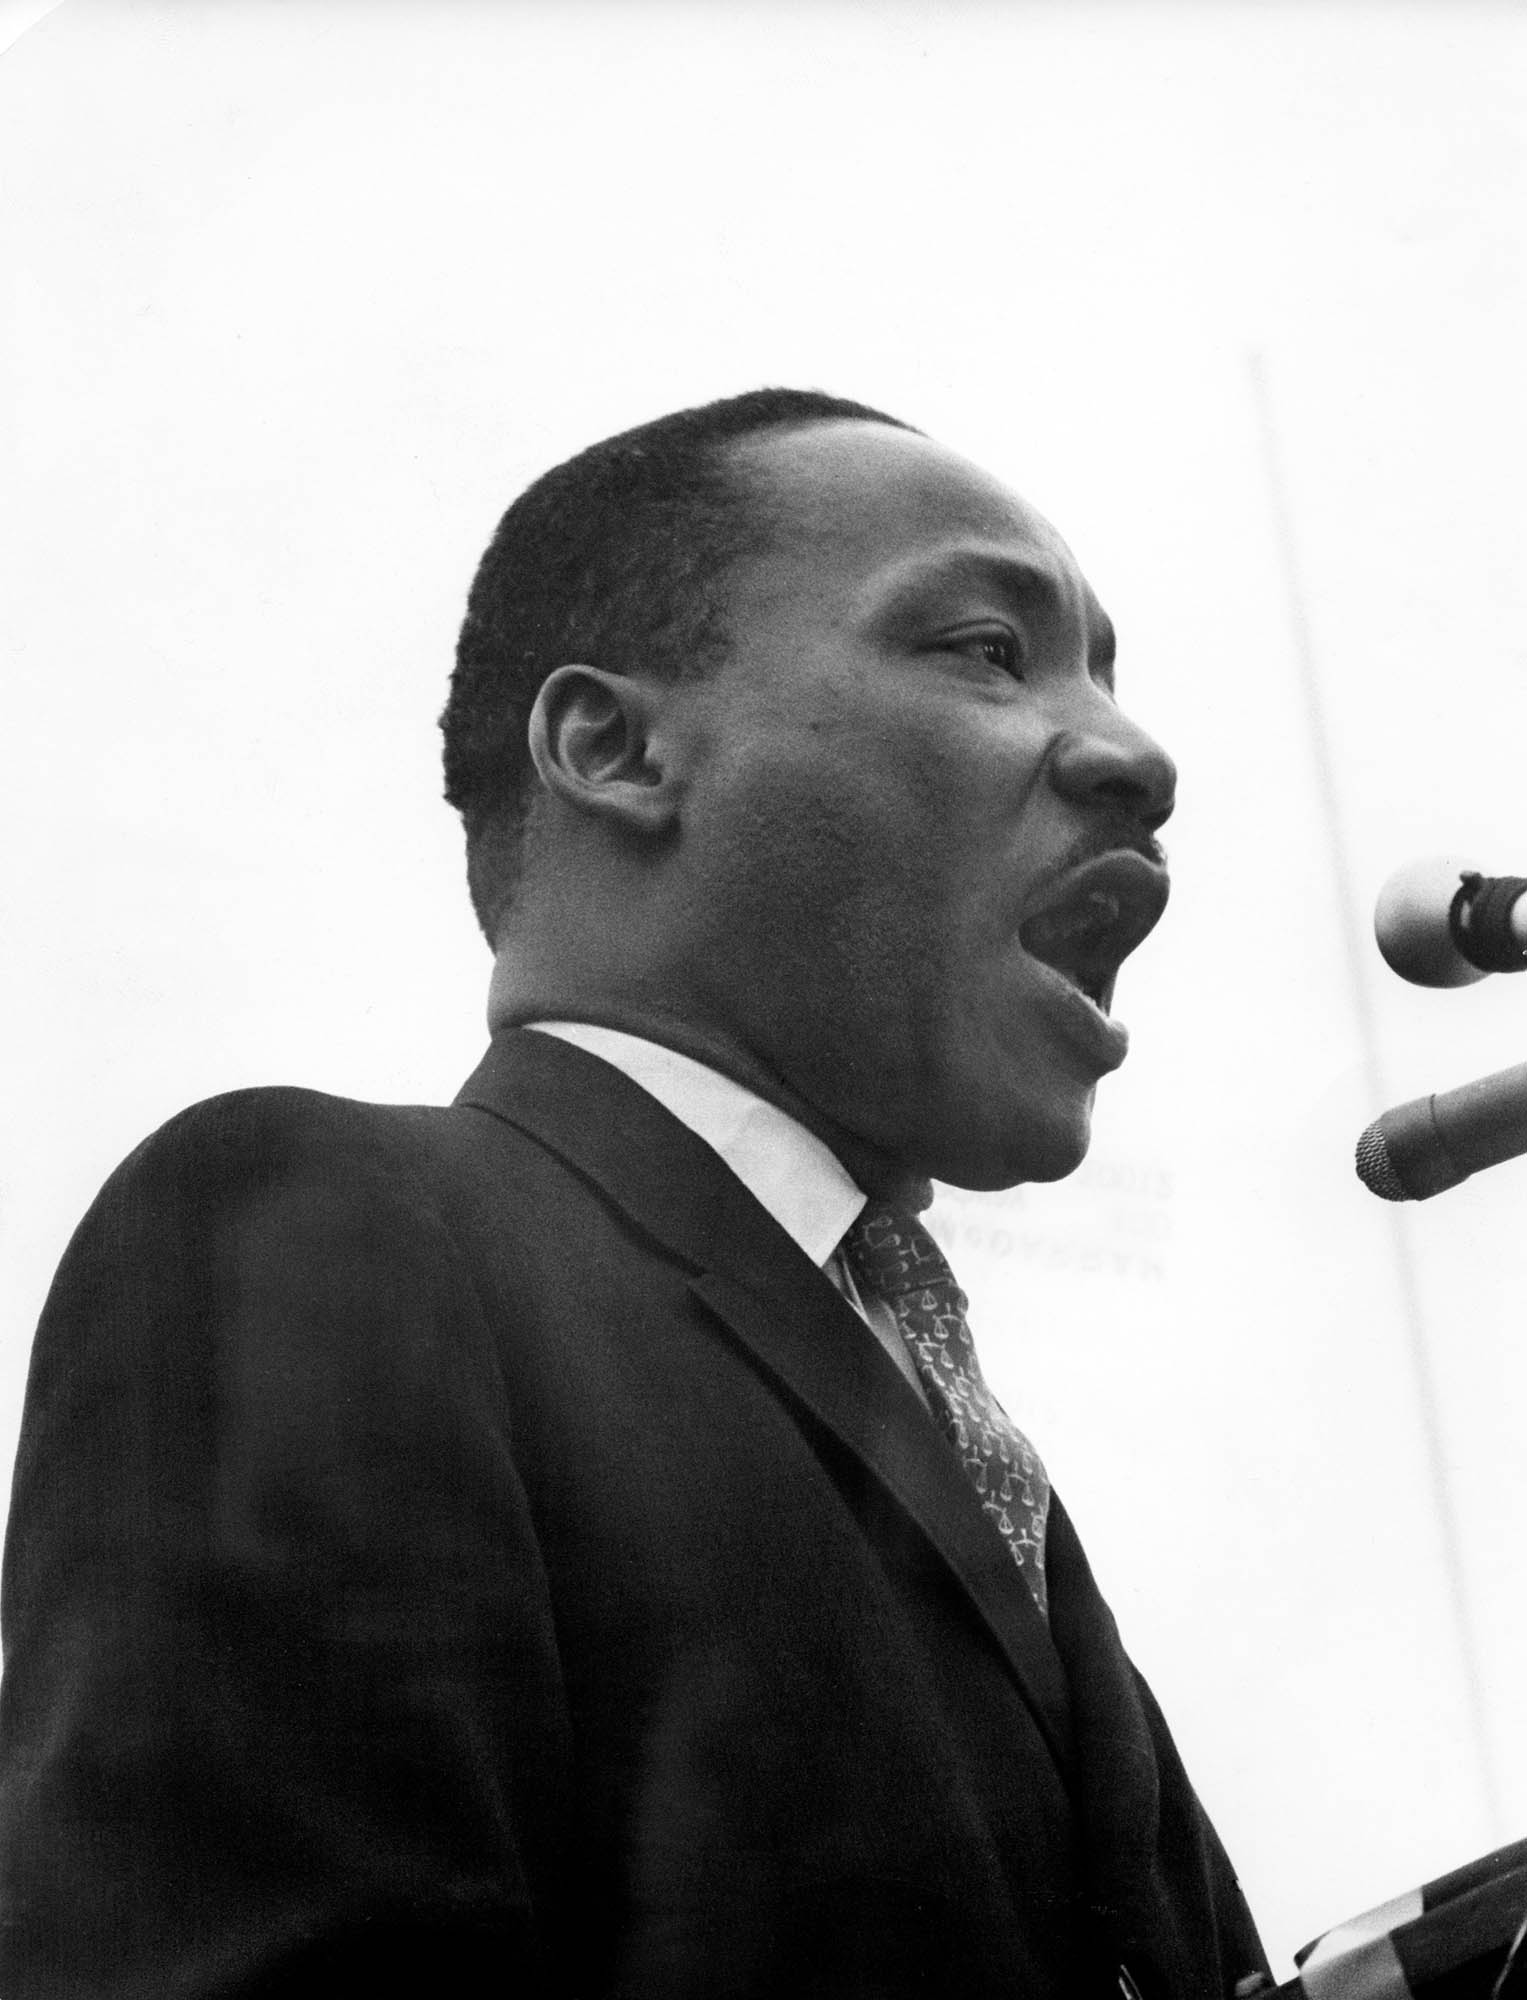 Dr. King Speaks at Anti-War Rally at the United Nations Plaza, NYC, April 15, 1967.